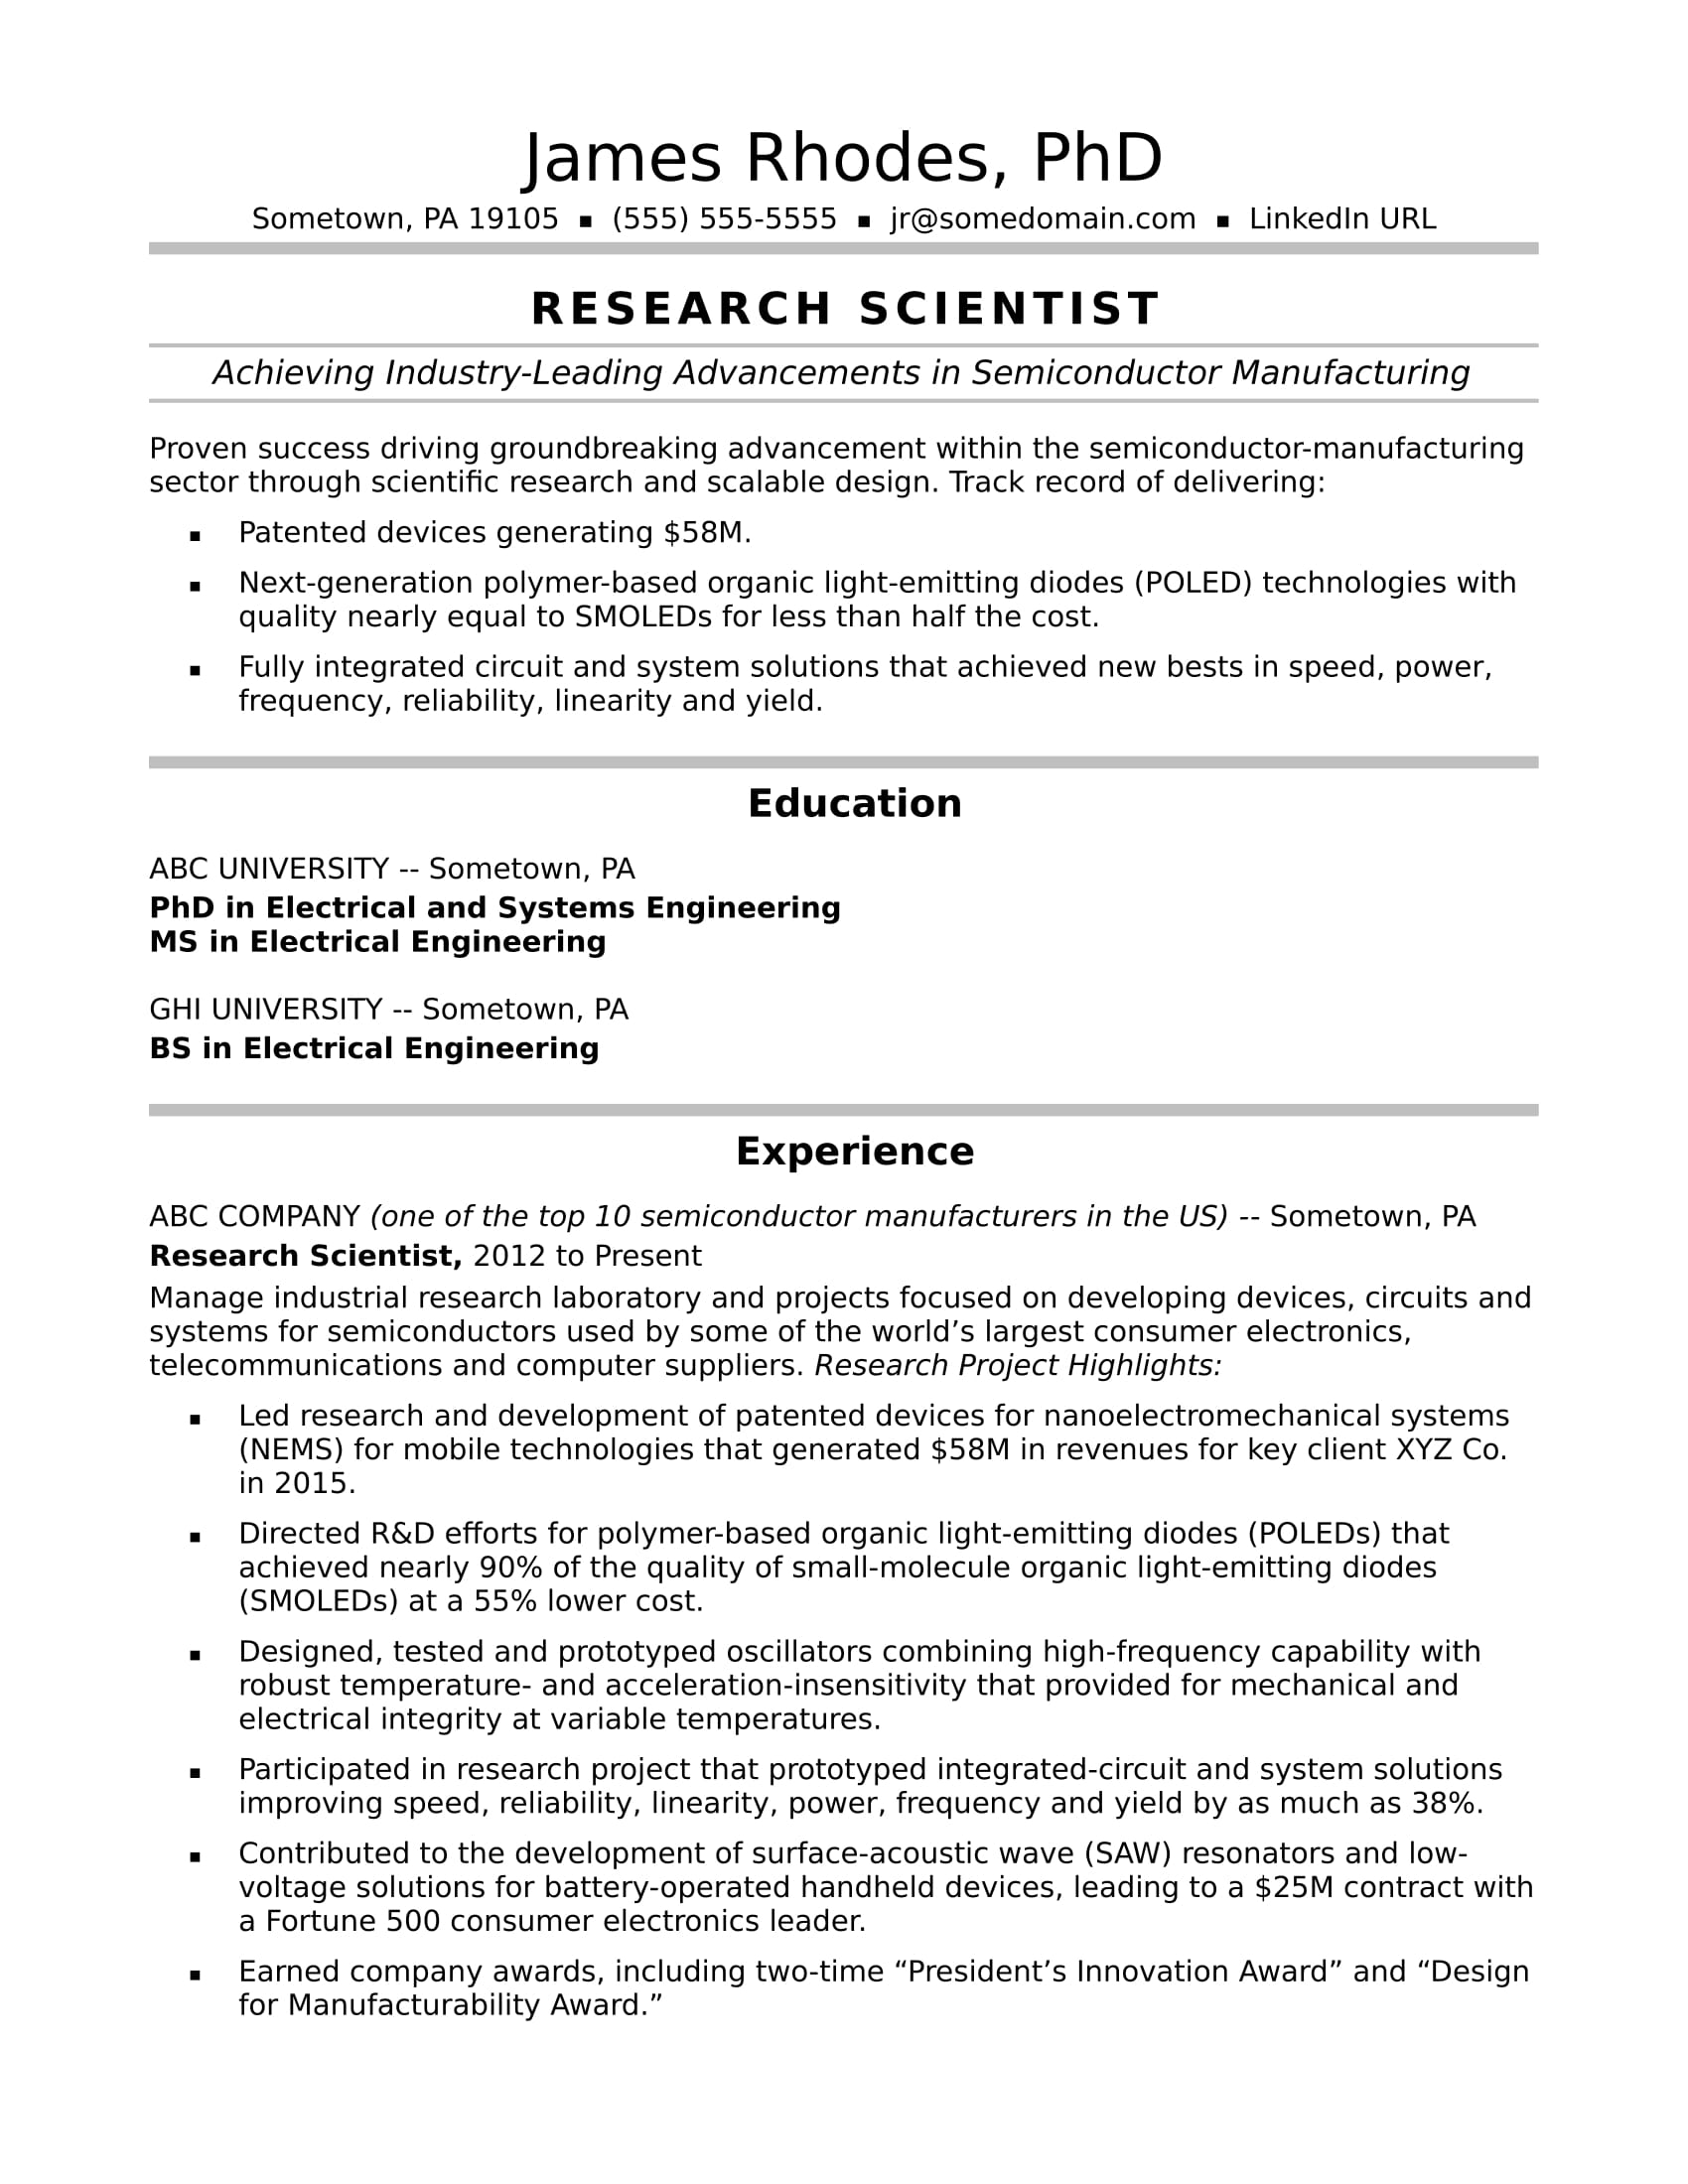 Sample Resume For A Research Scientist  Us Resume Samples